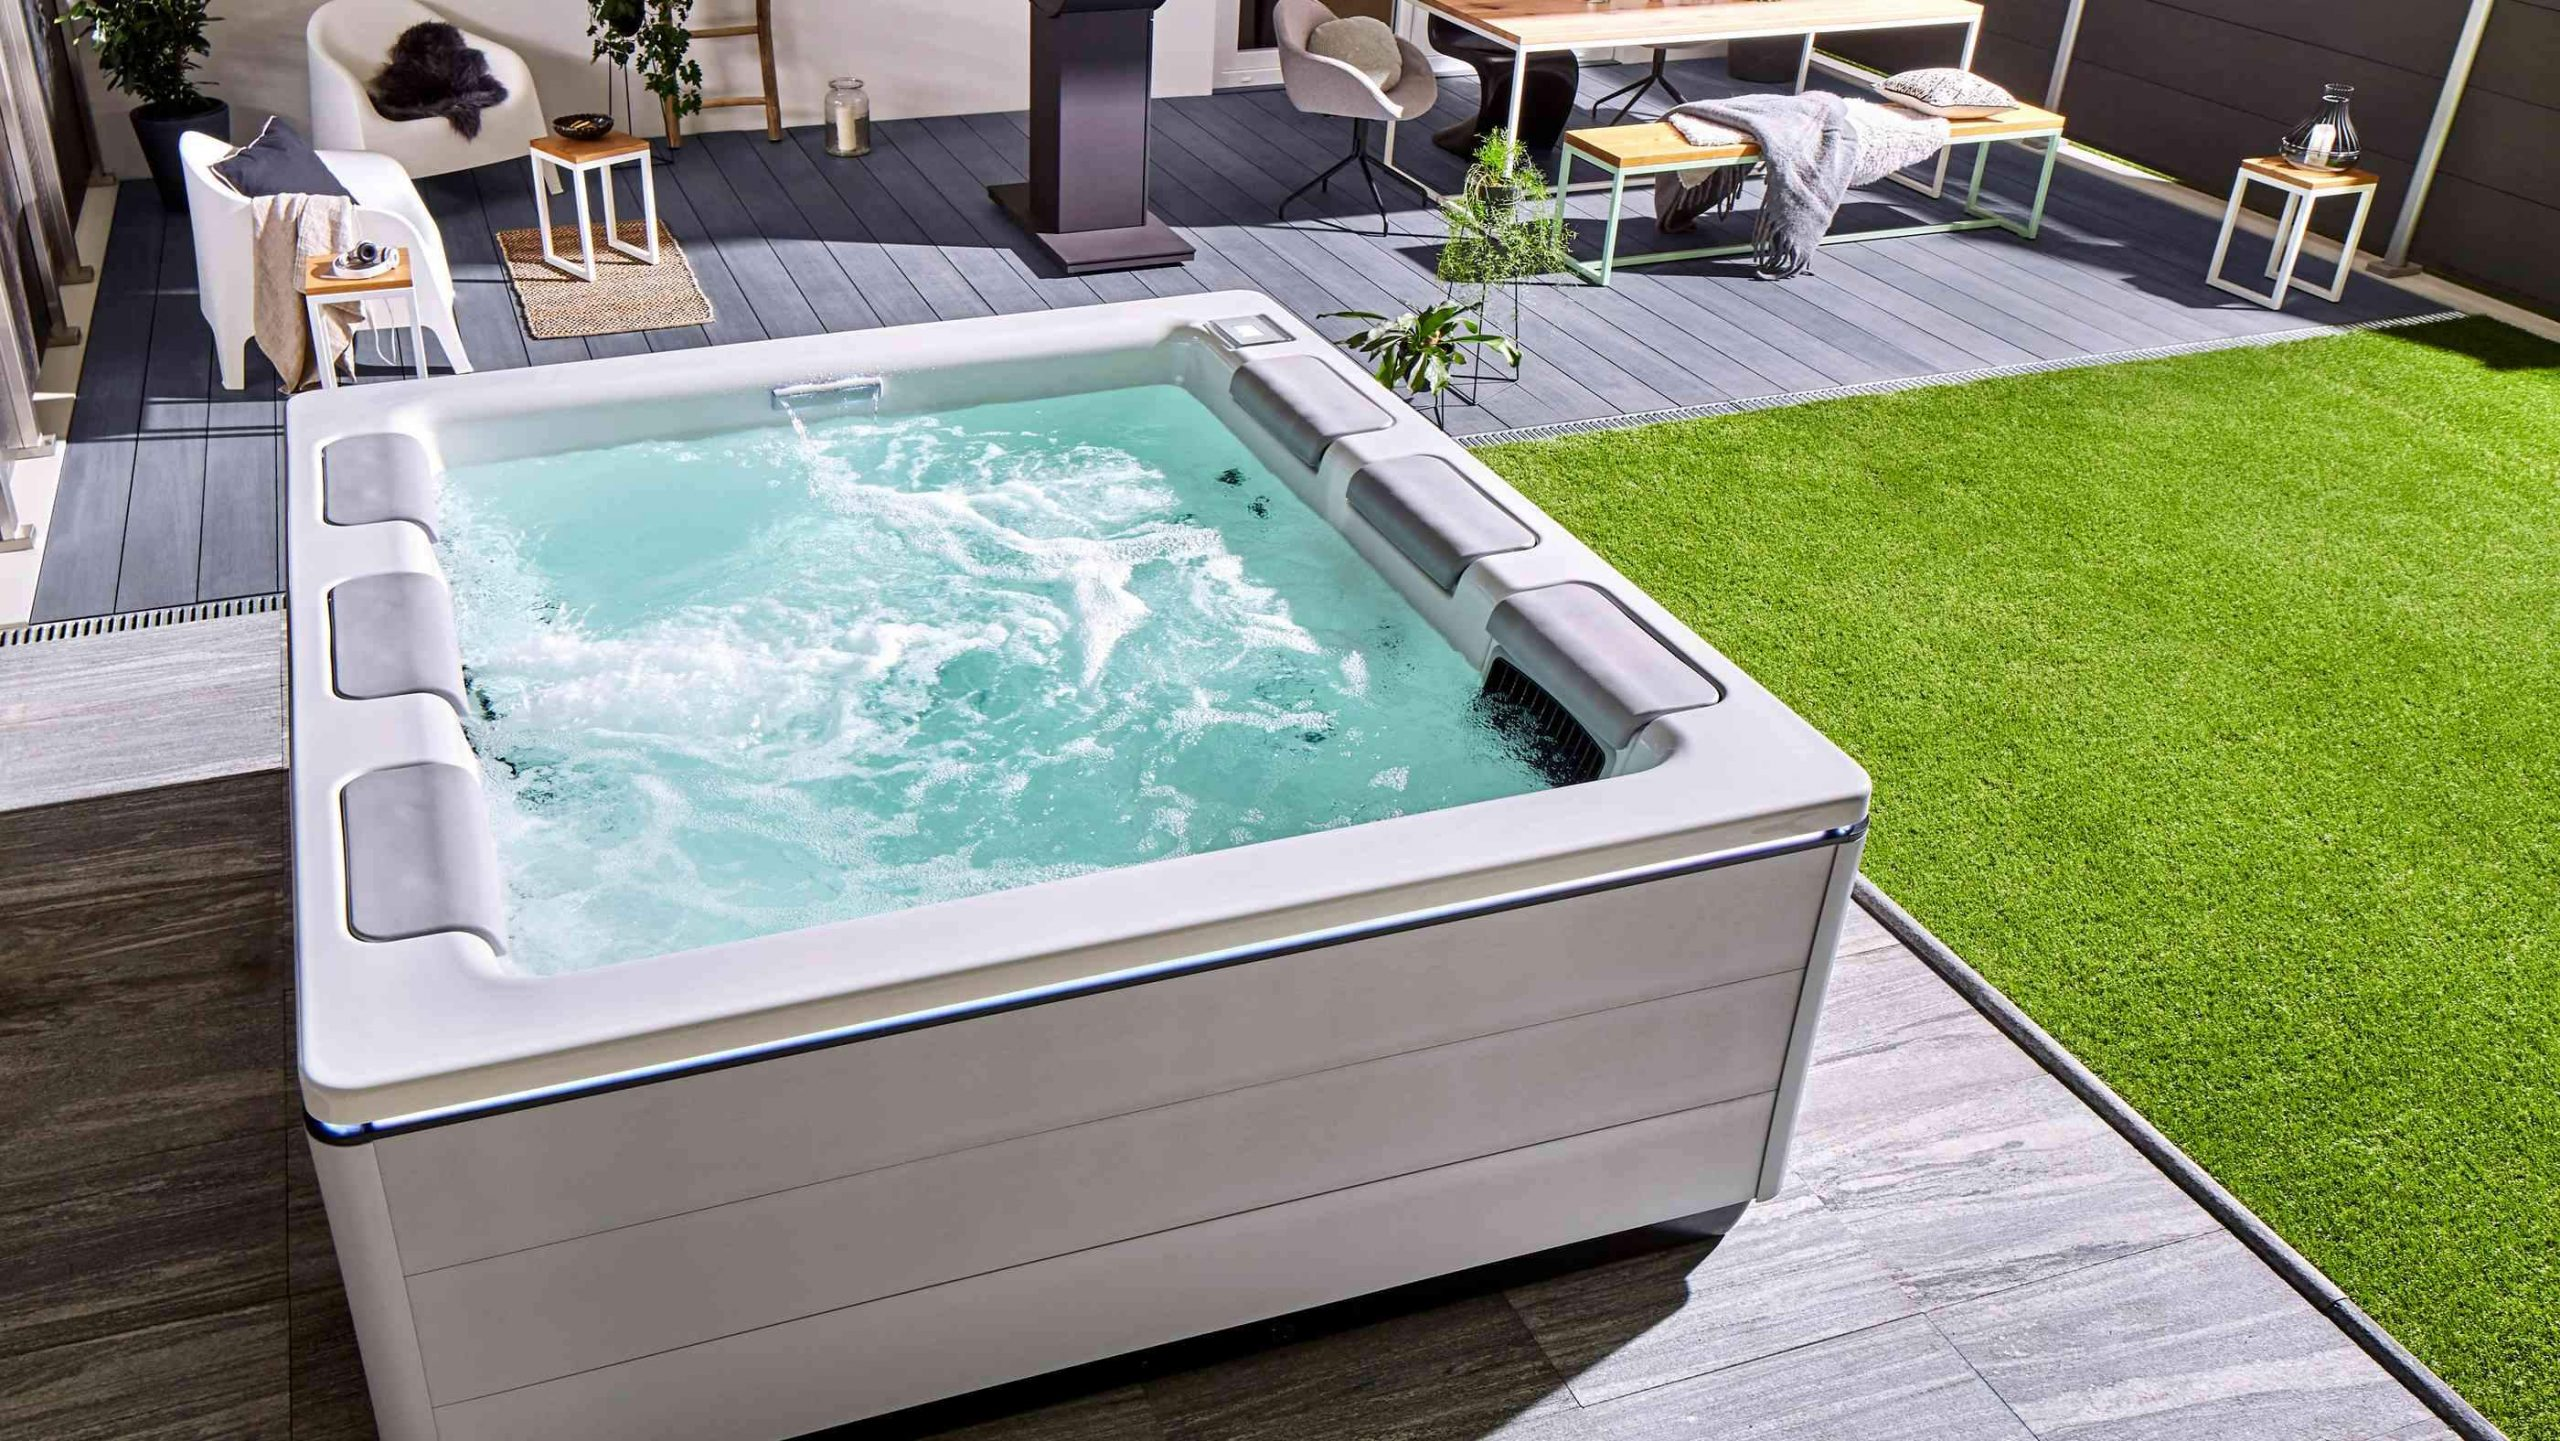 Outdoor Oase mit Wellnessfaktor Pool content 1400x788 2x